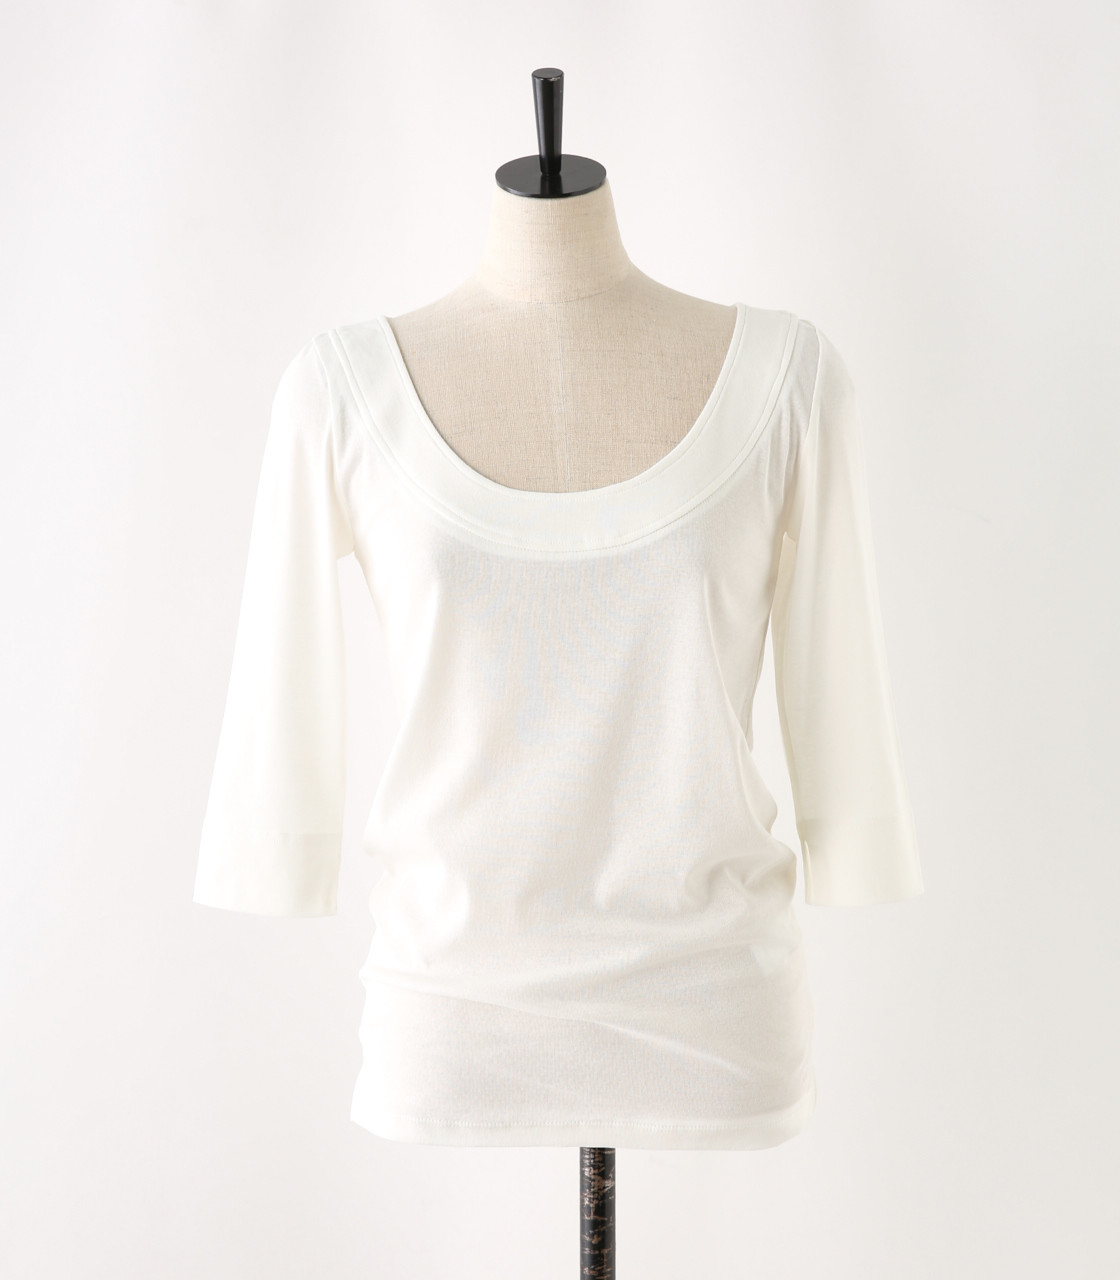 oval neck cut tops